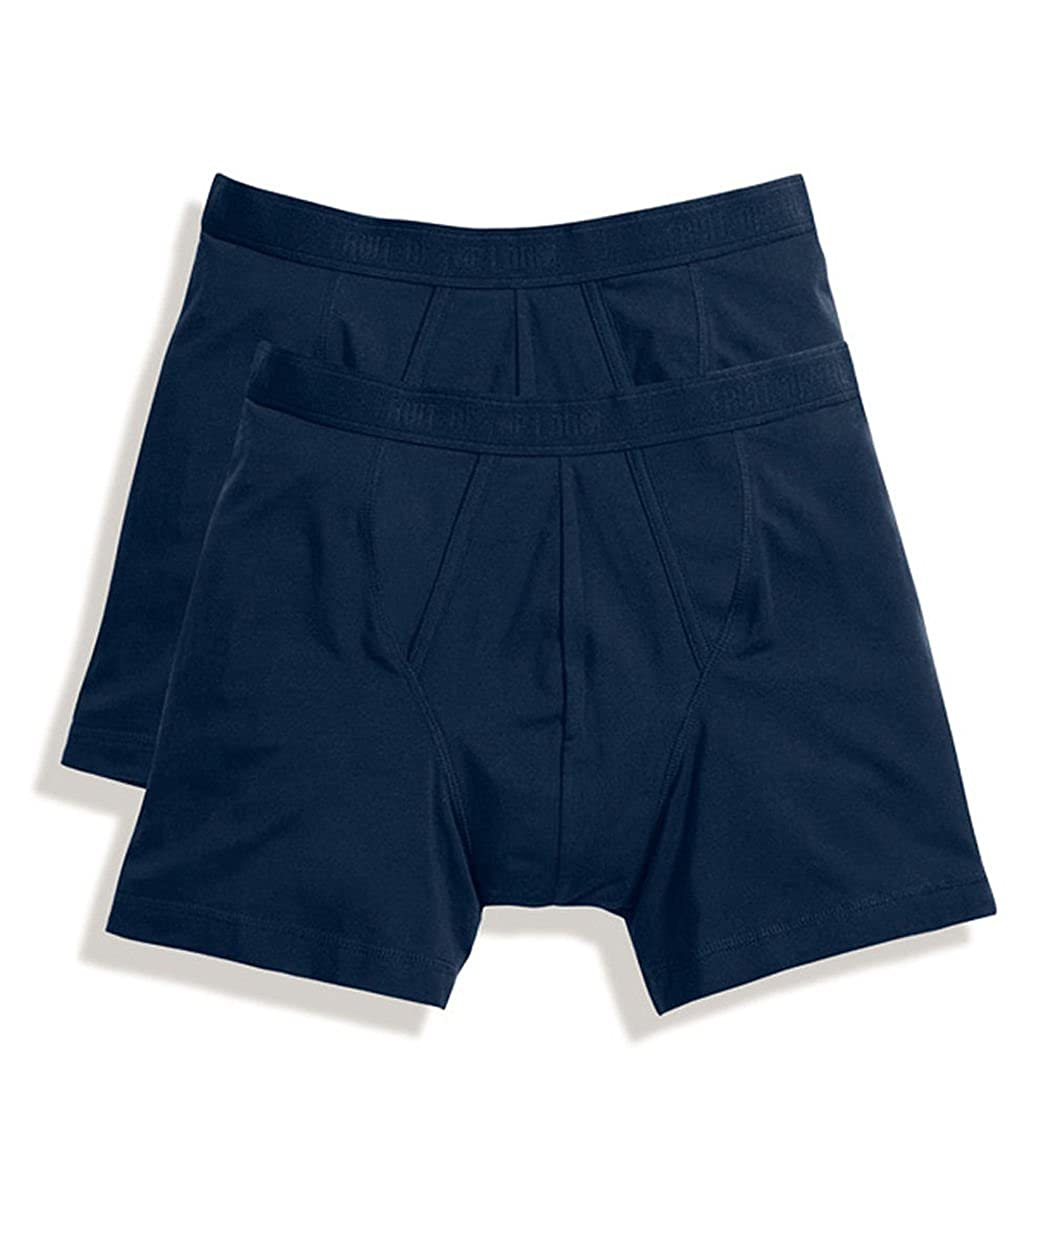 Homme Boxer Gris.v1 Fruit of the Loom Classic Boxer